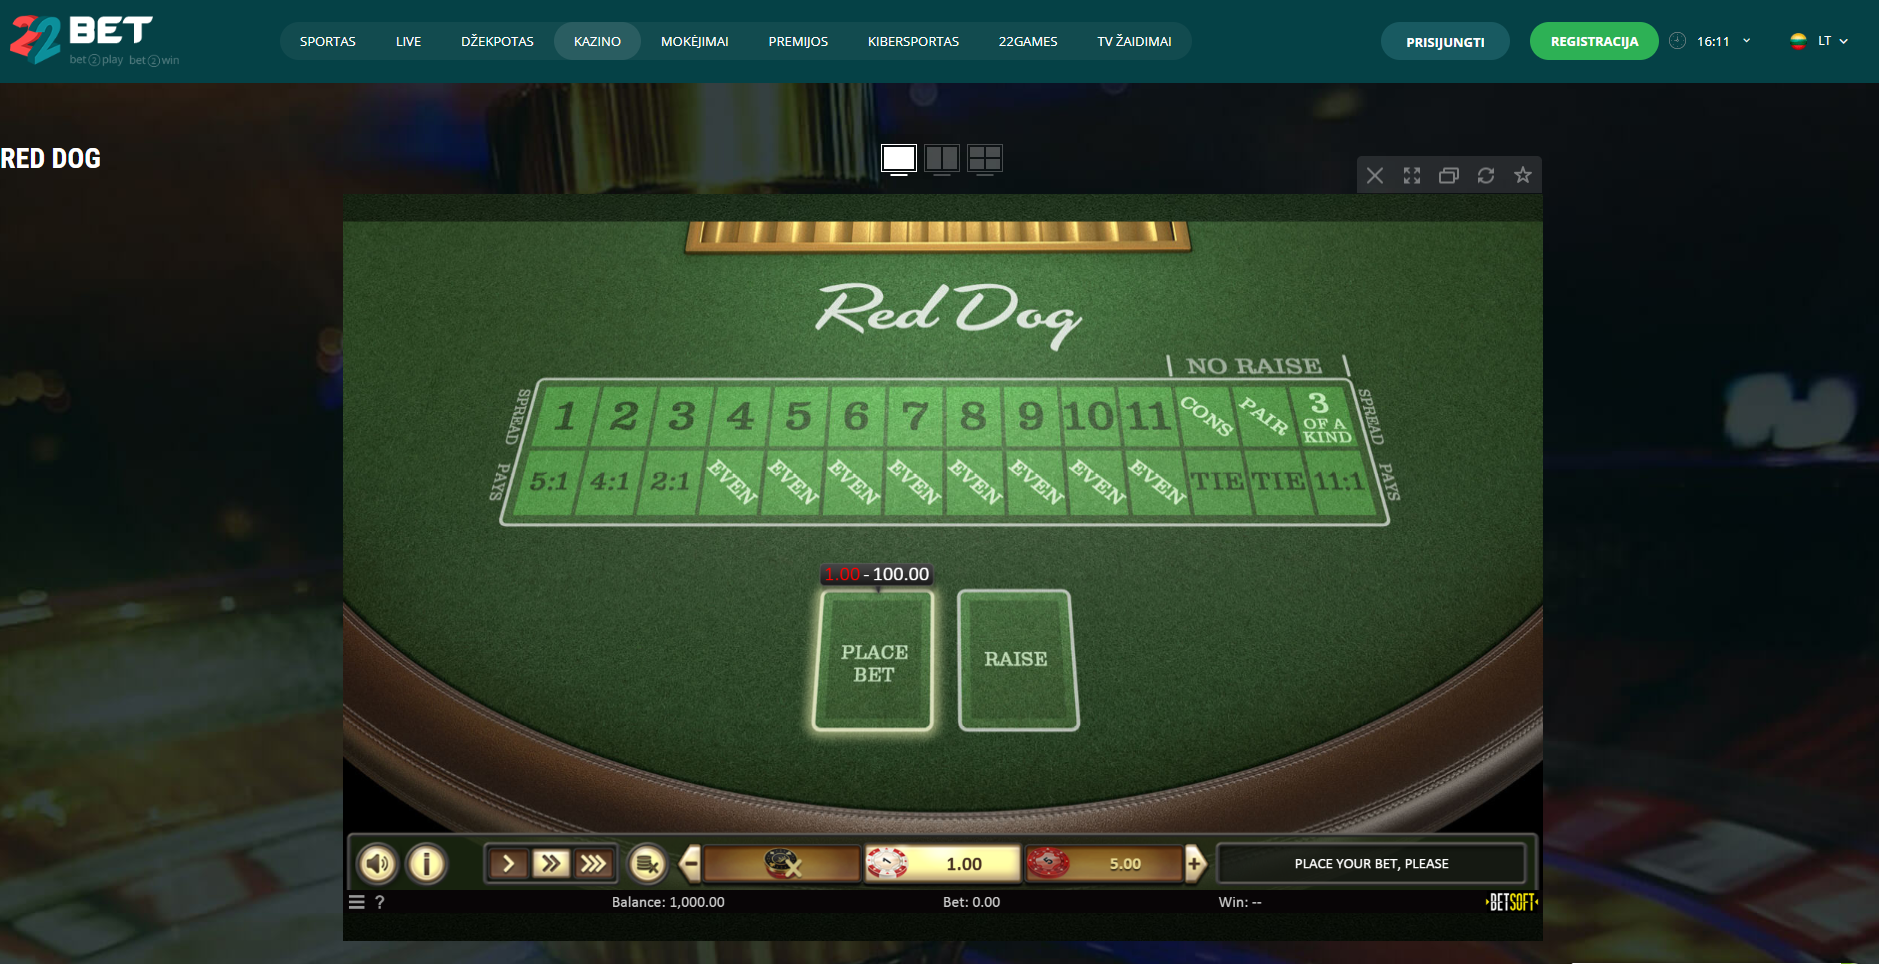 22bet casino red dog poker game - red dog casino